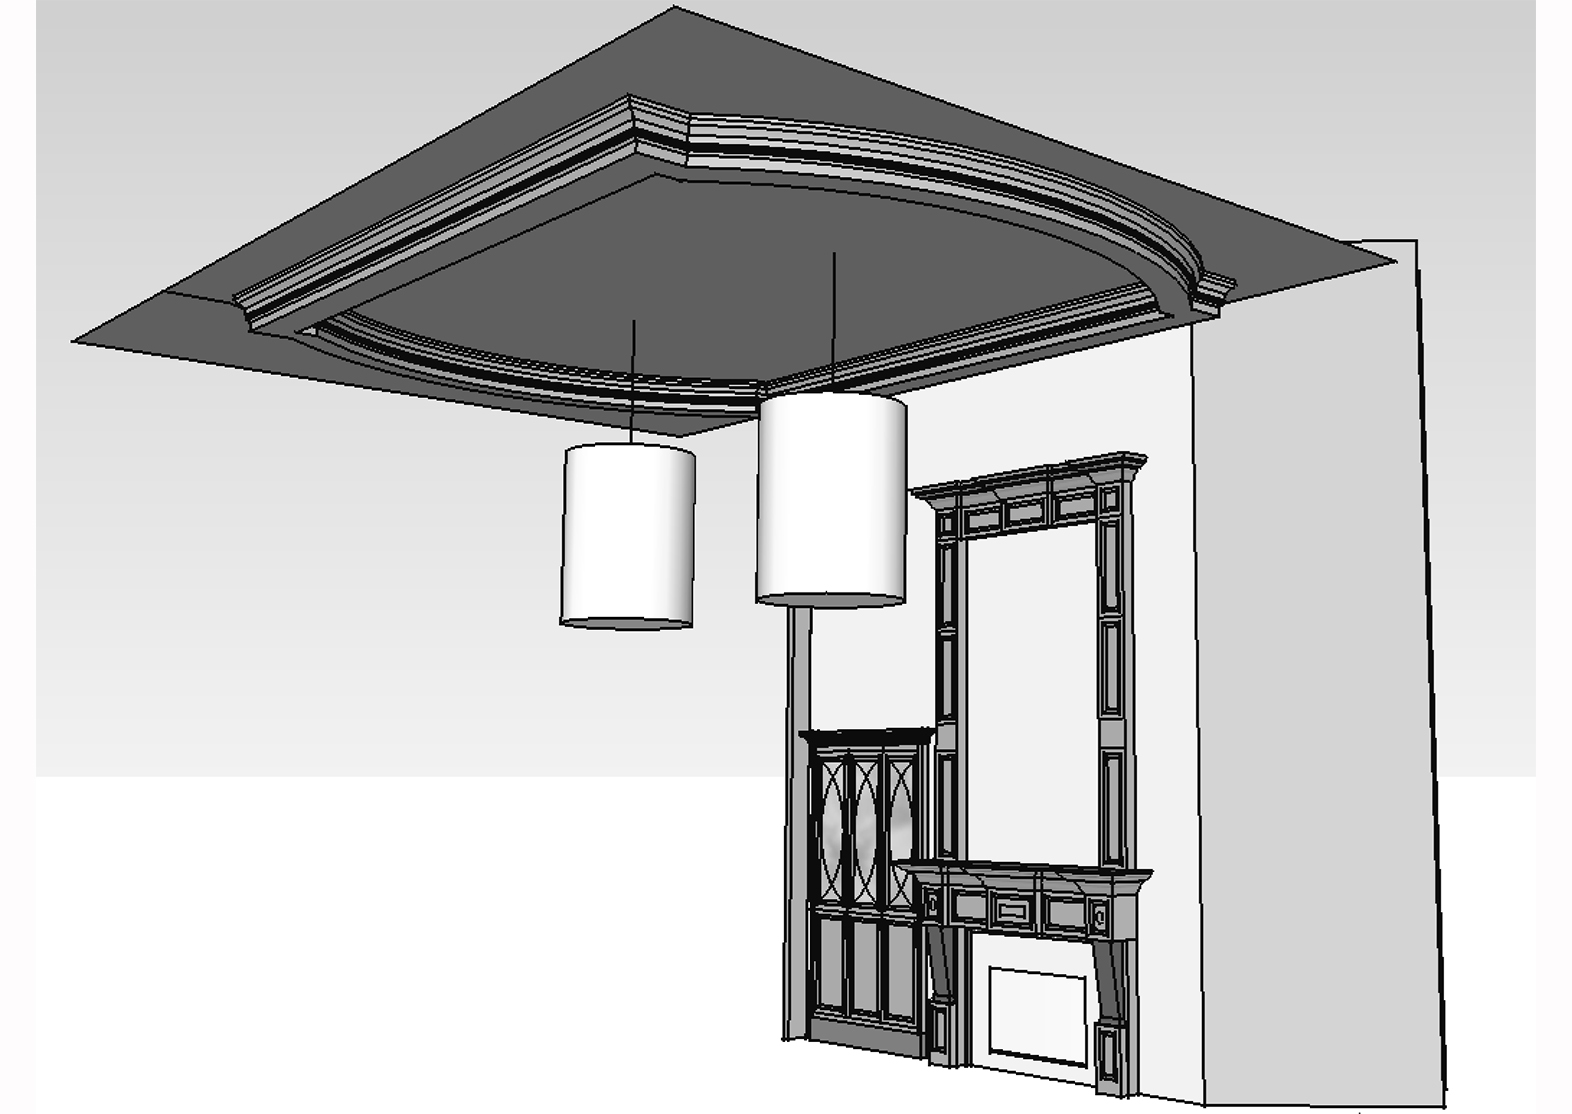 sketchup fireplace edited frame.jpg